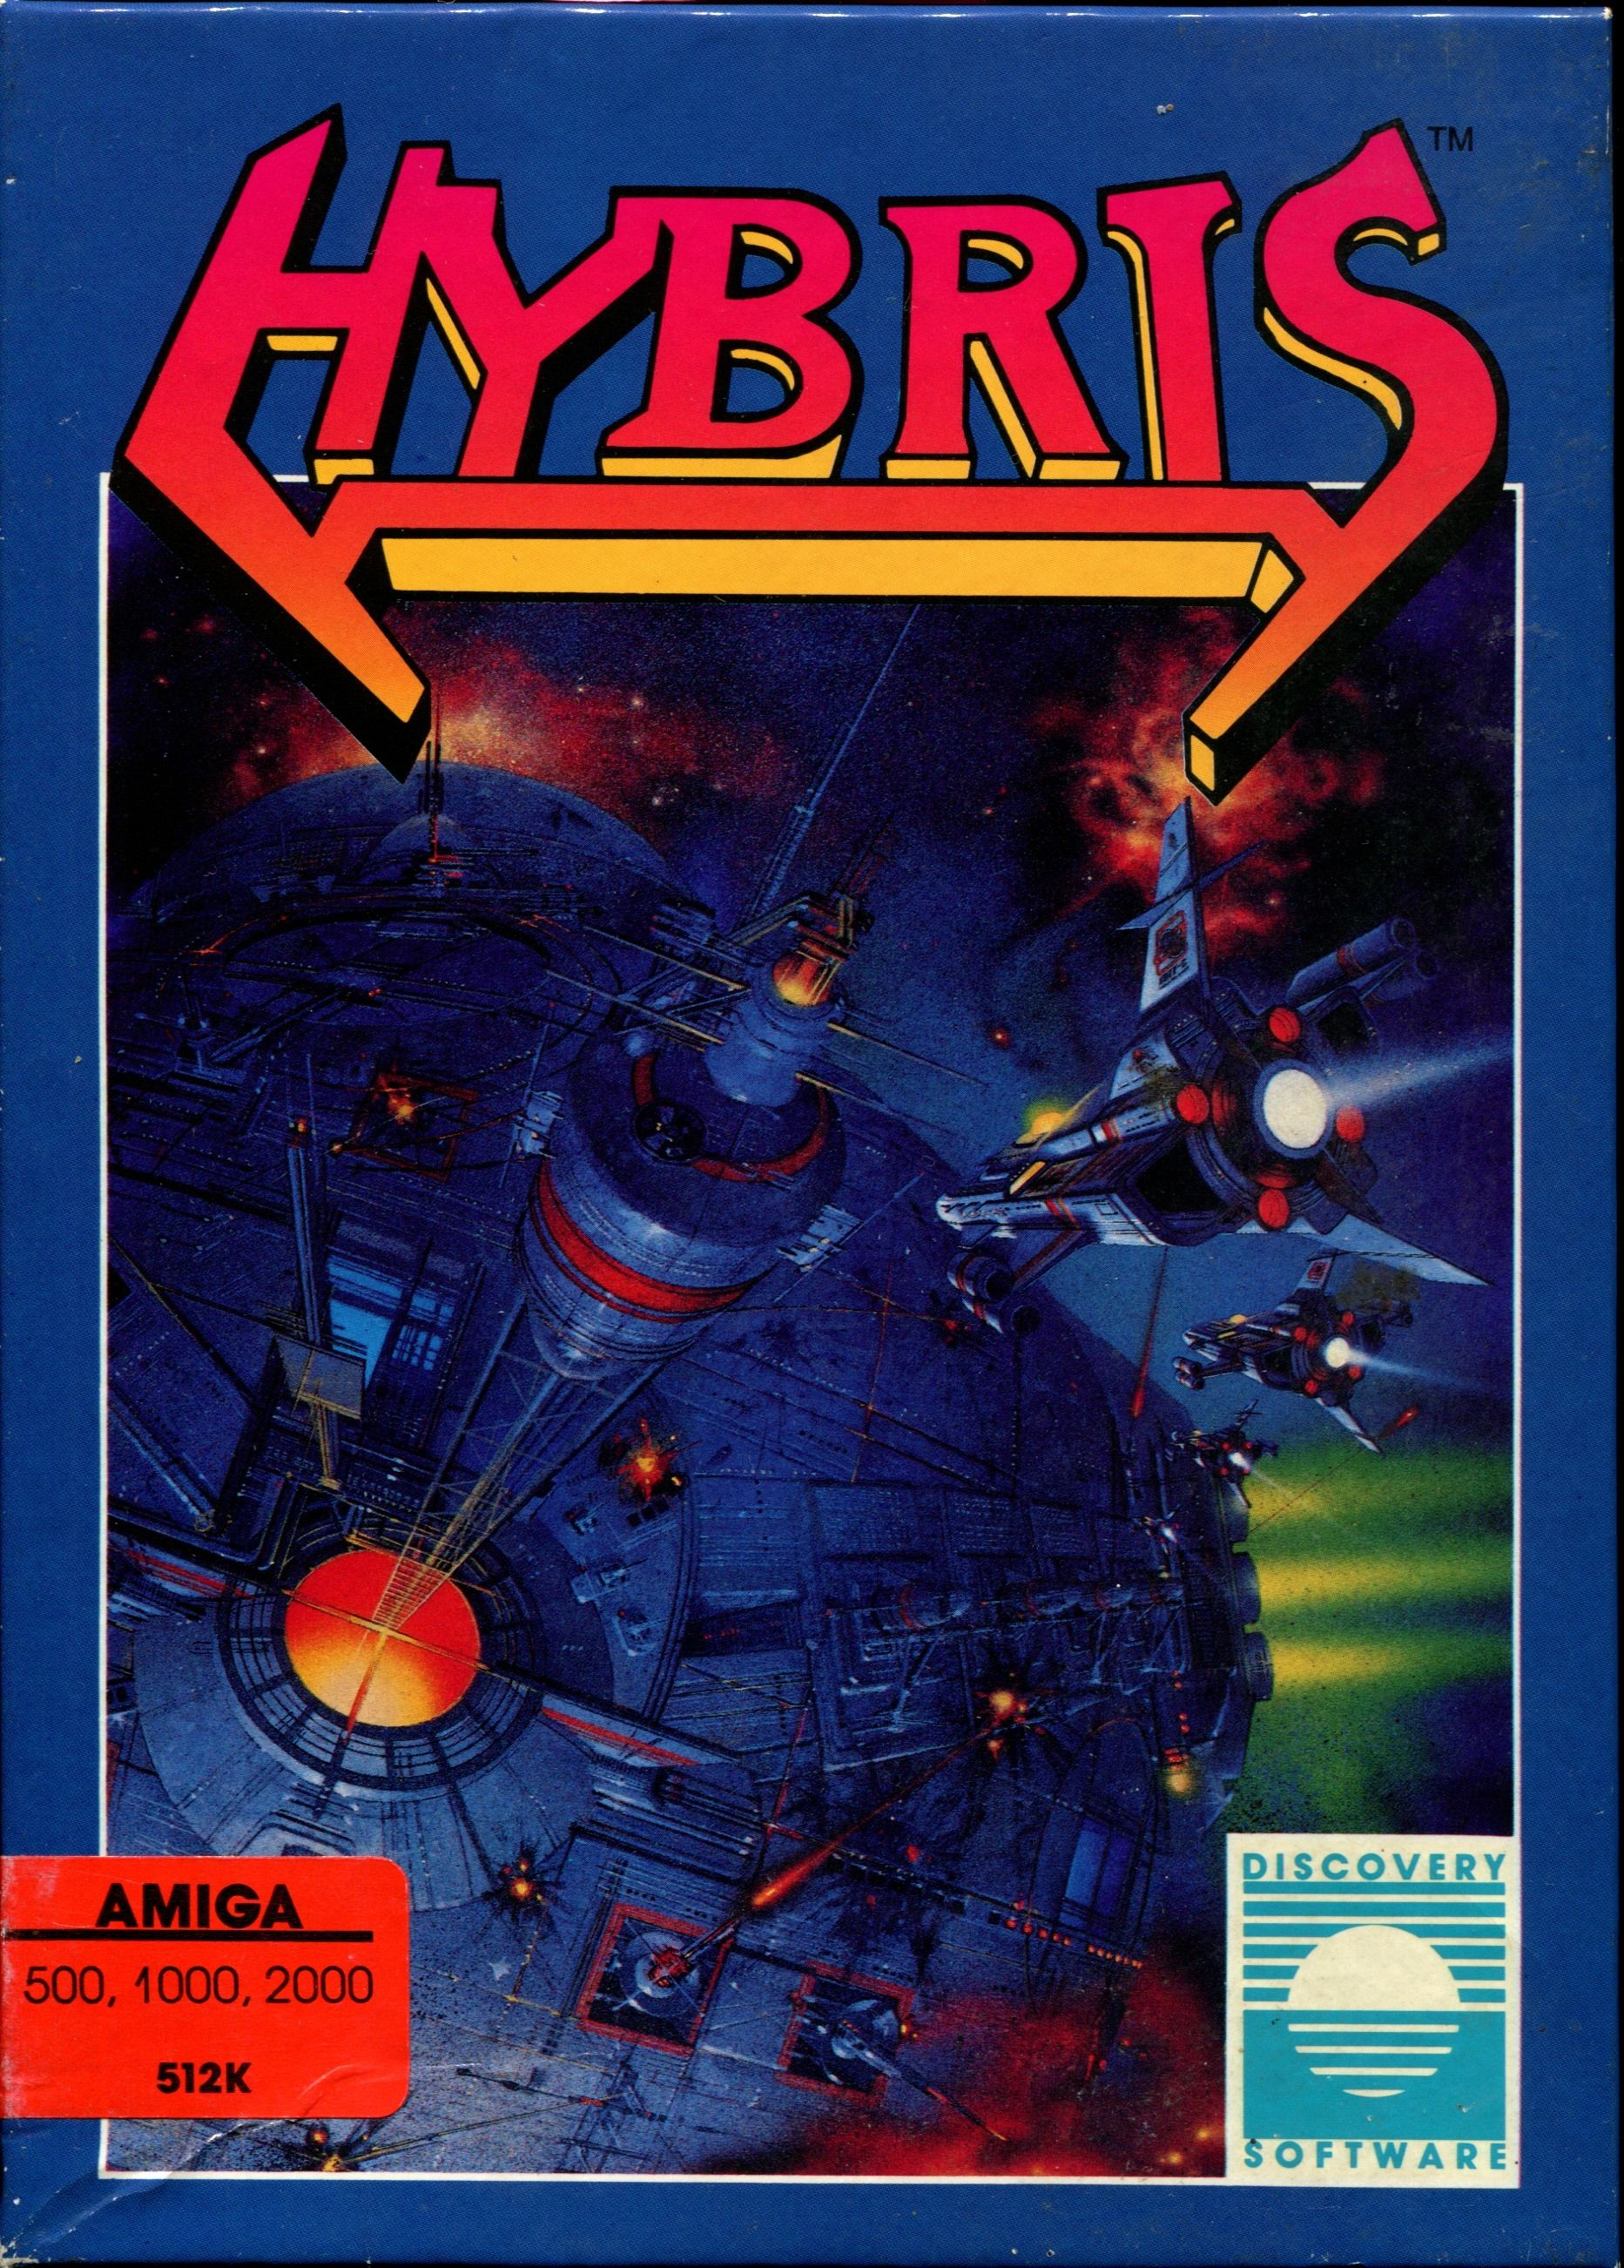 Hybris game box artwork one of the amigas greatest games hybris game box artwork one of the amigas greatest games sciox Gallery